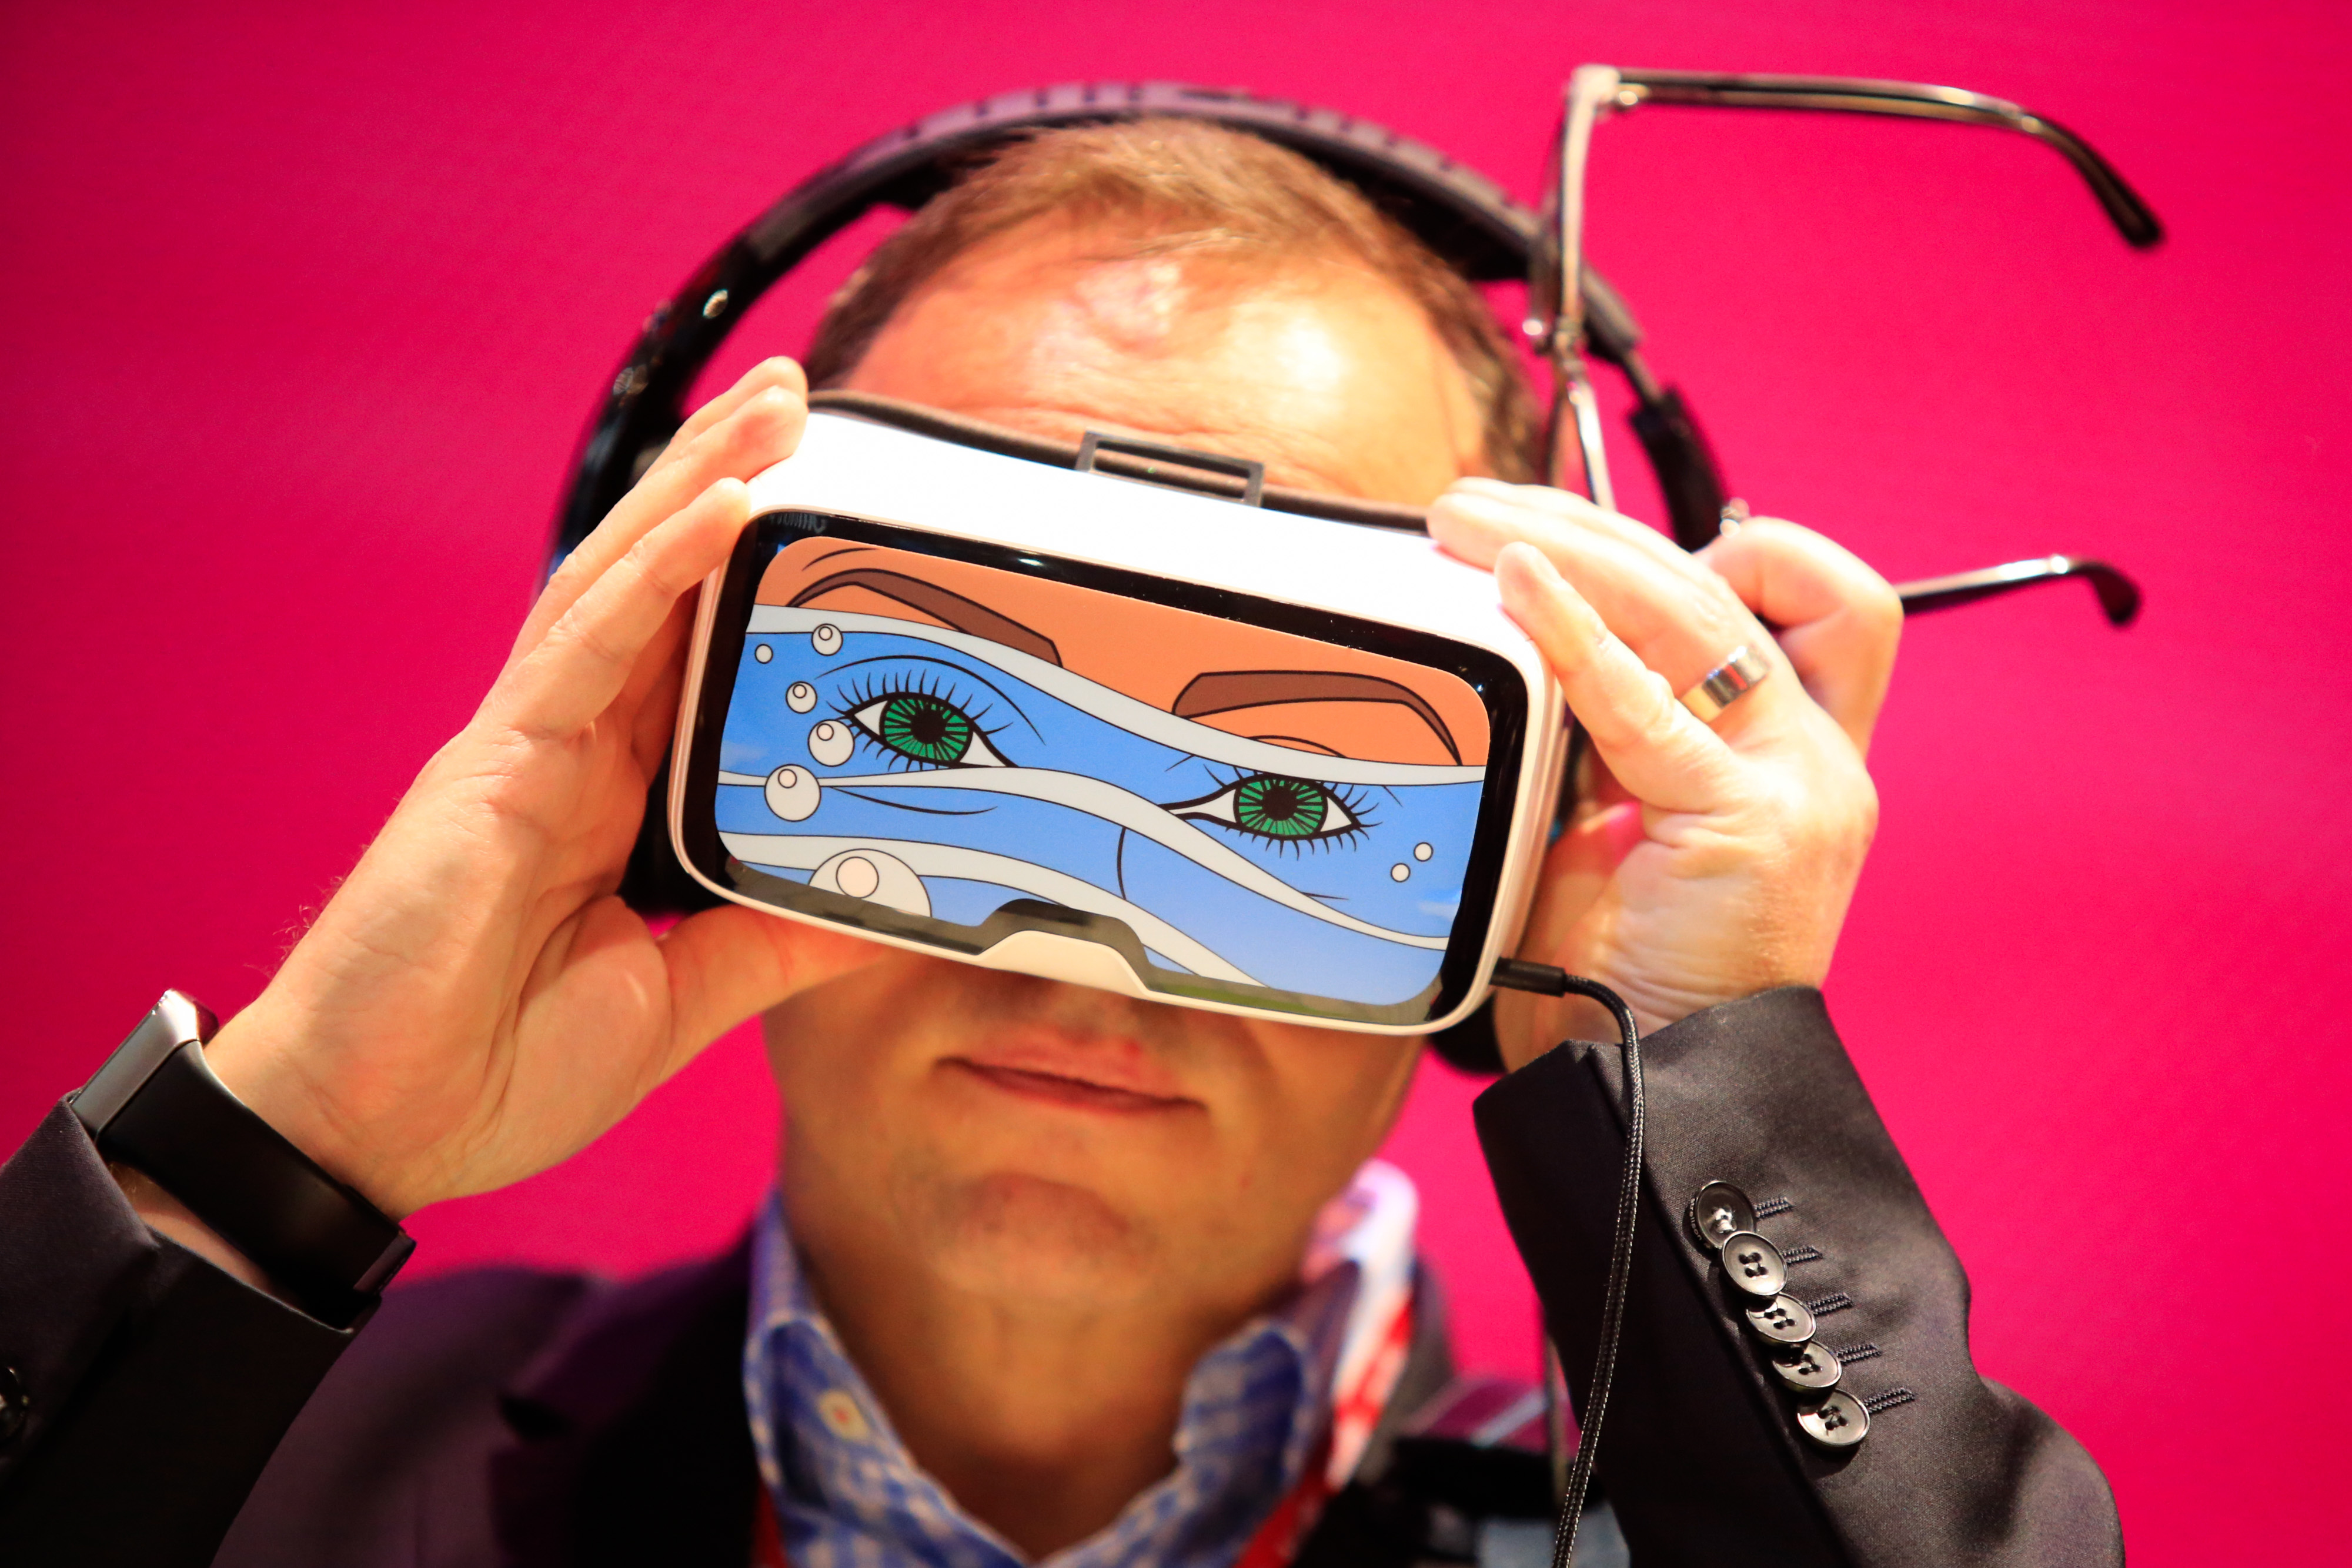 Opening Day Of The Mobile World Congress